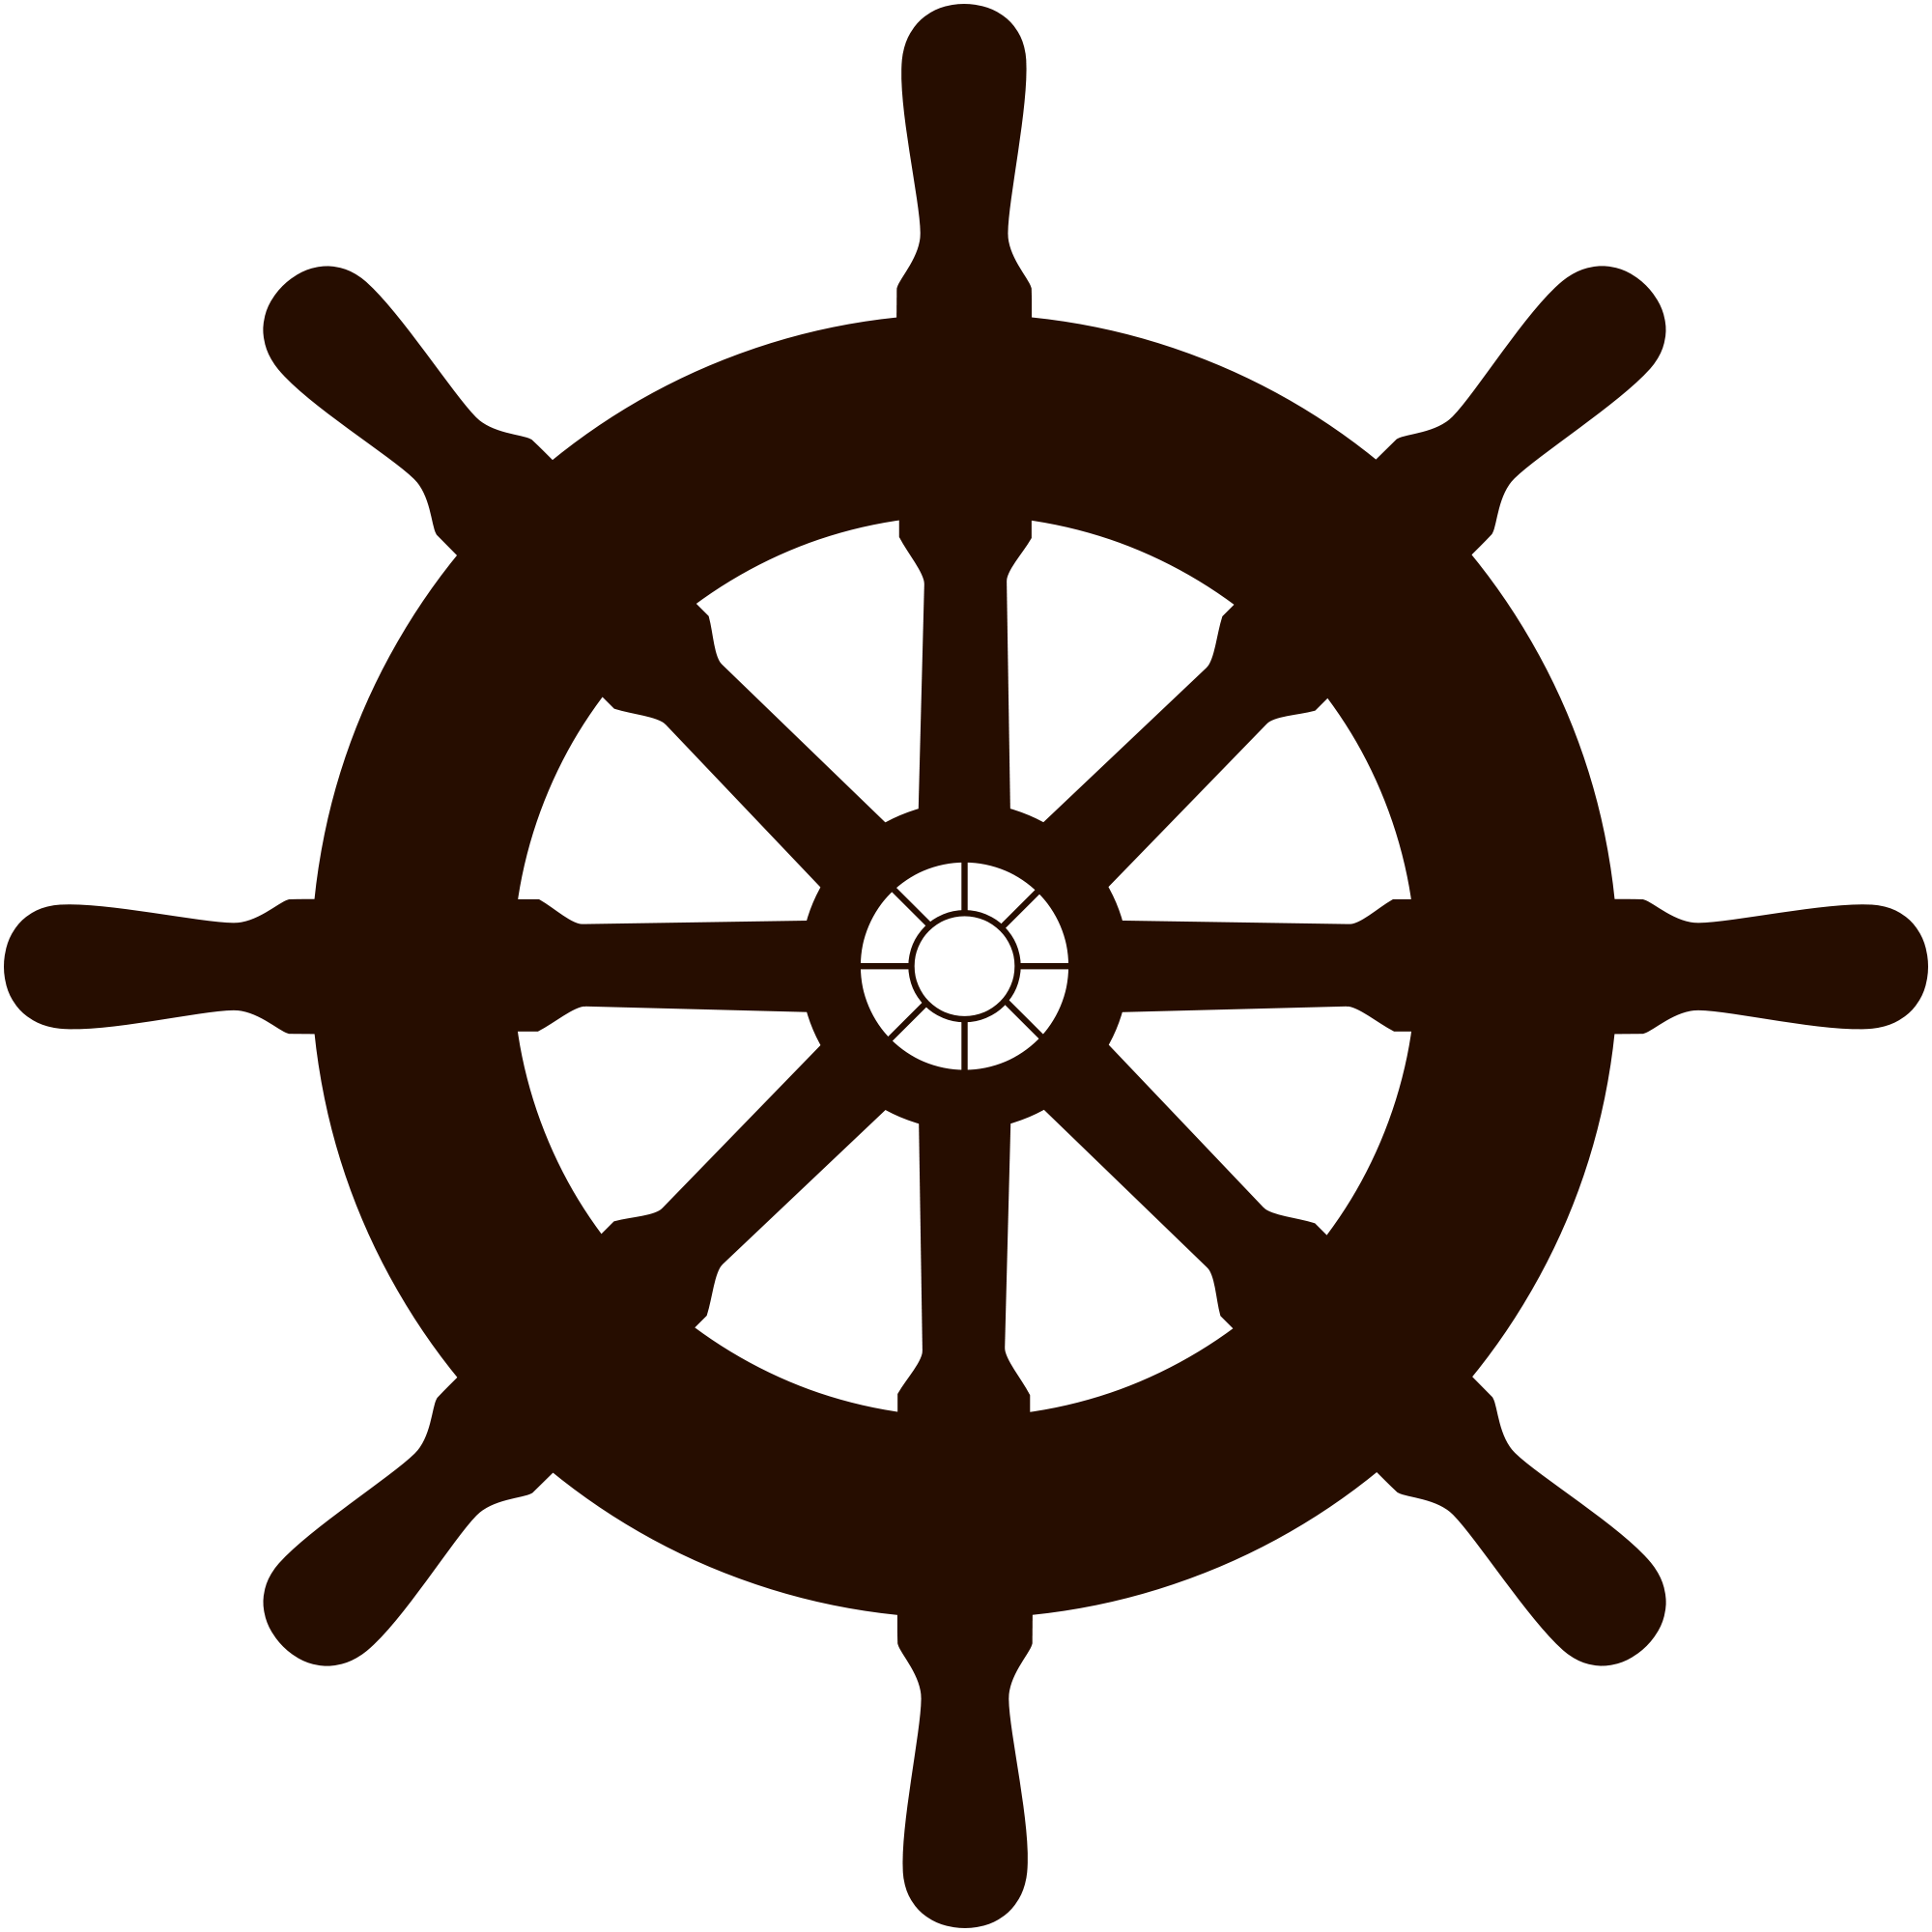 Ship Wheel Silhouette Png Free Download #305575.